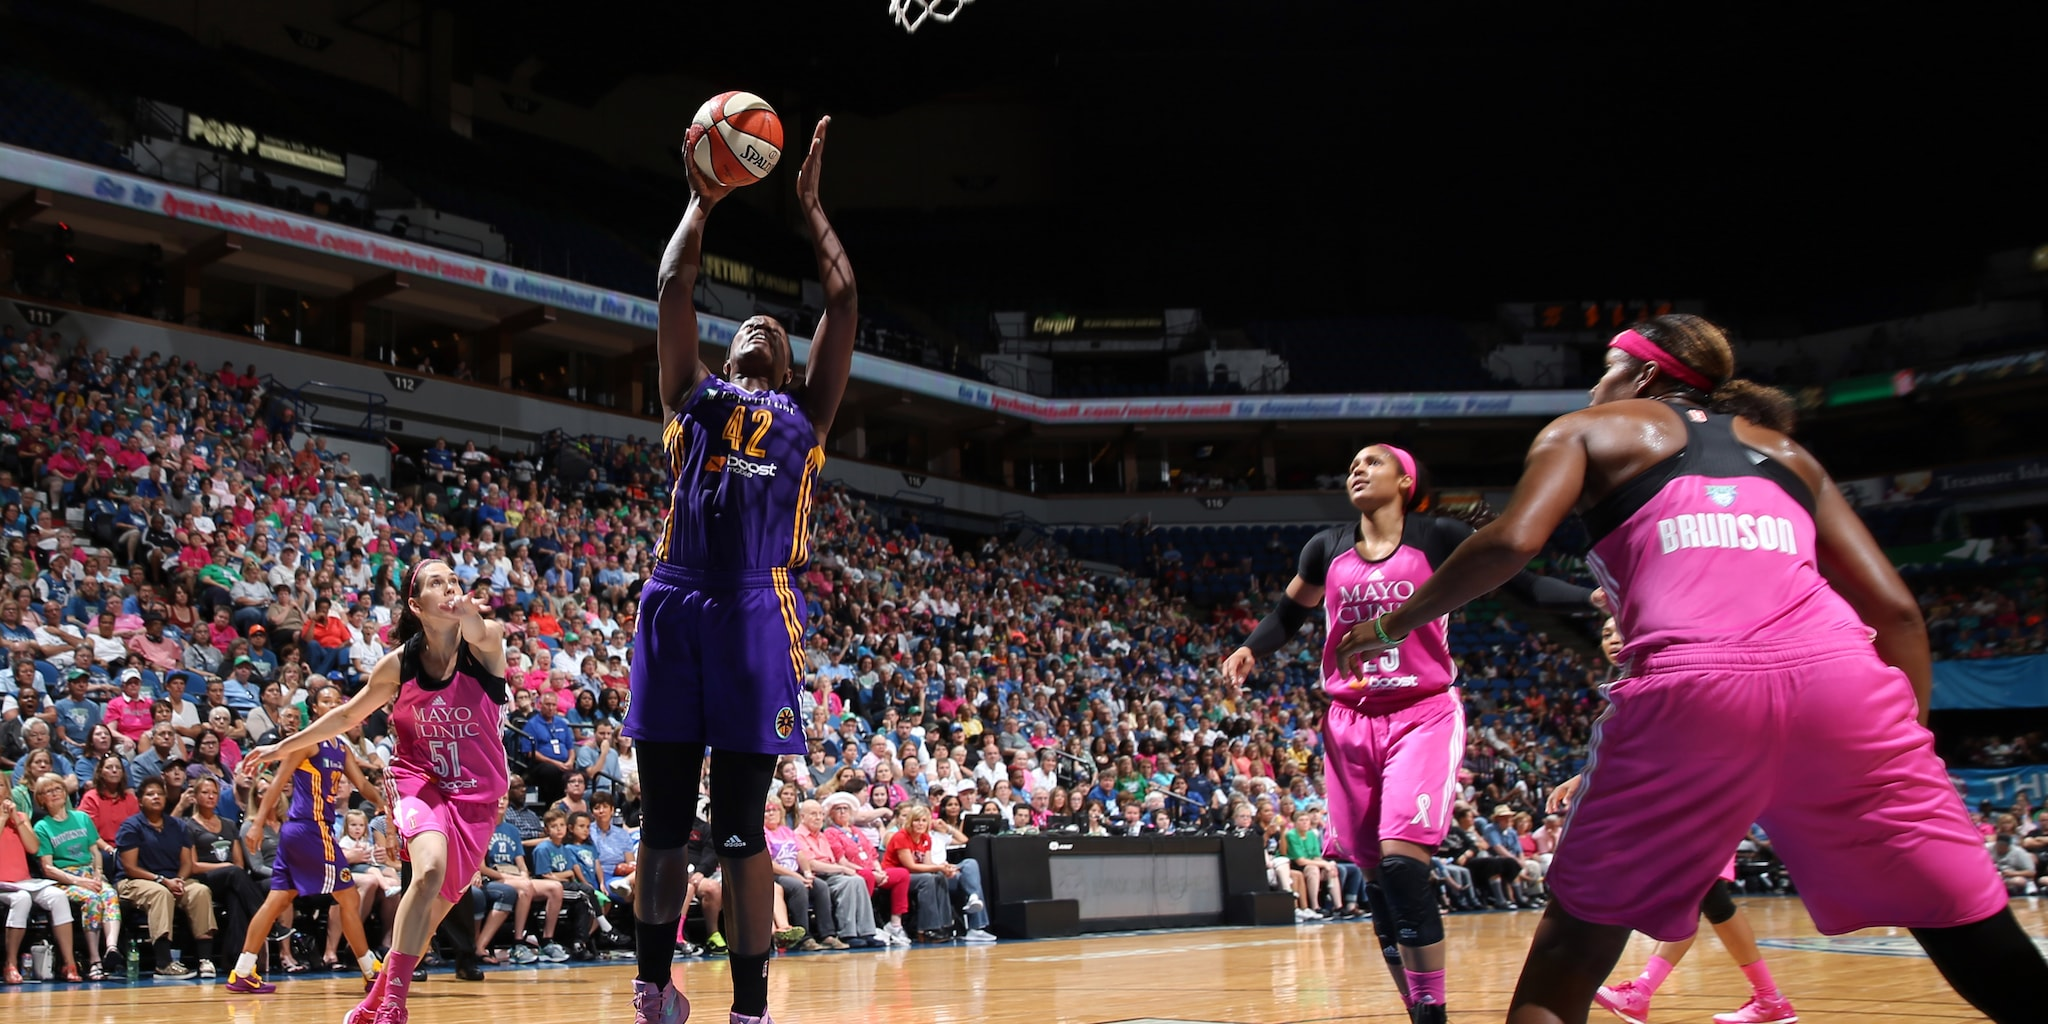 Sparks center Jantel Lavender has given the Lynx fits all season long and tonight was no exception. Lavender finished with 13 points and eight rebounds. It was the only game against the Lynx this season in which Lavender did not notch a double-double.